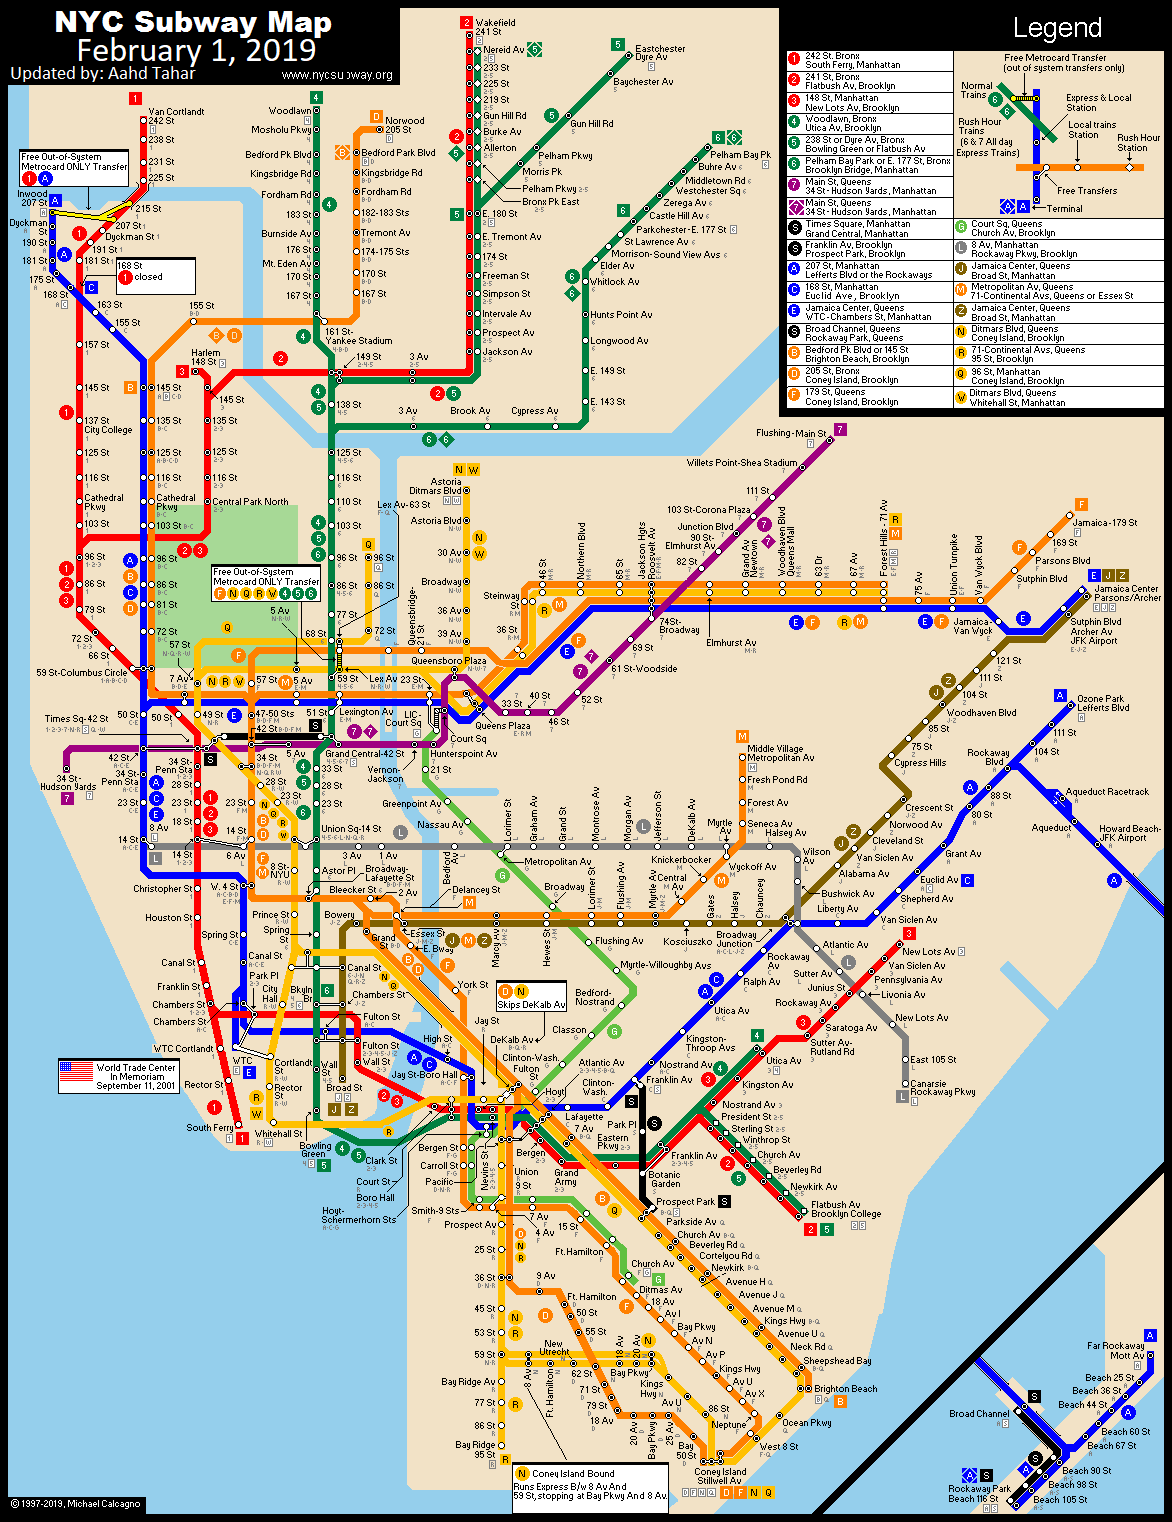 Subway Map In Manhatten.Www Nycsubway Org New York City Subway Route Map By Michael Calcagno